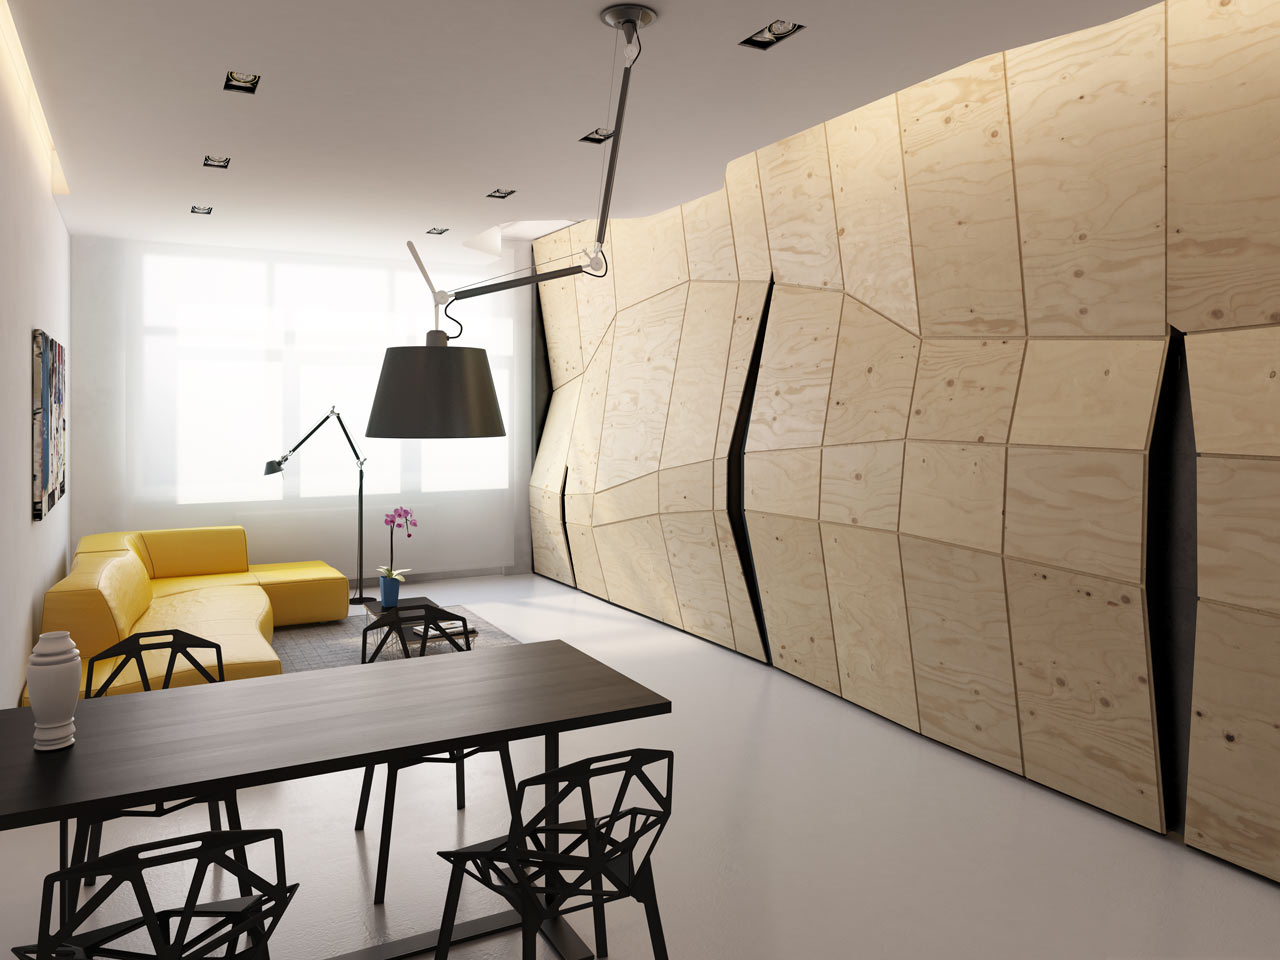 popular transforming apartment maximizes small space design milk